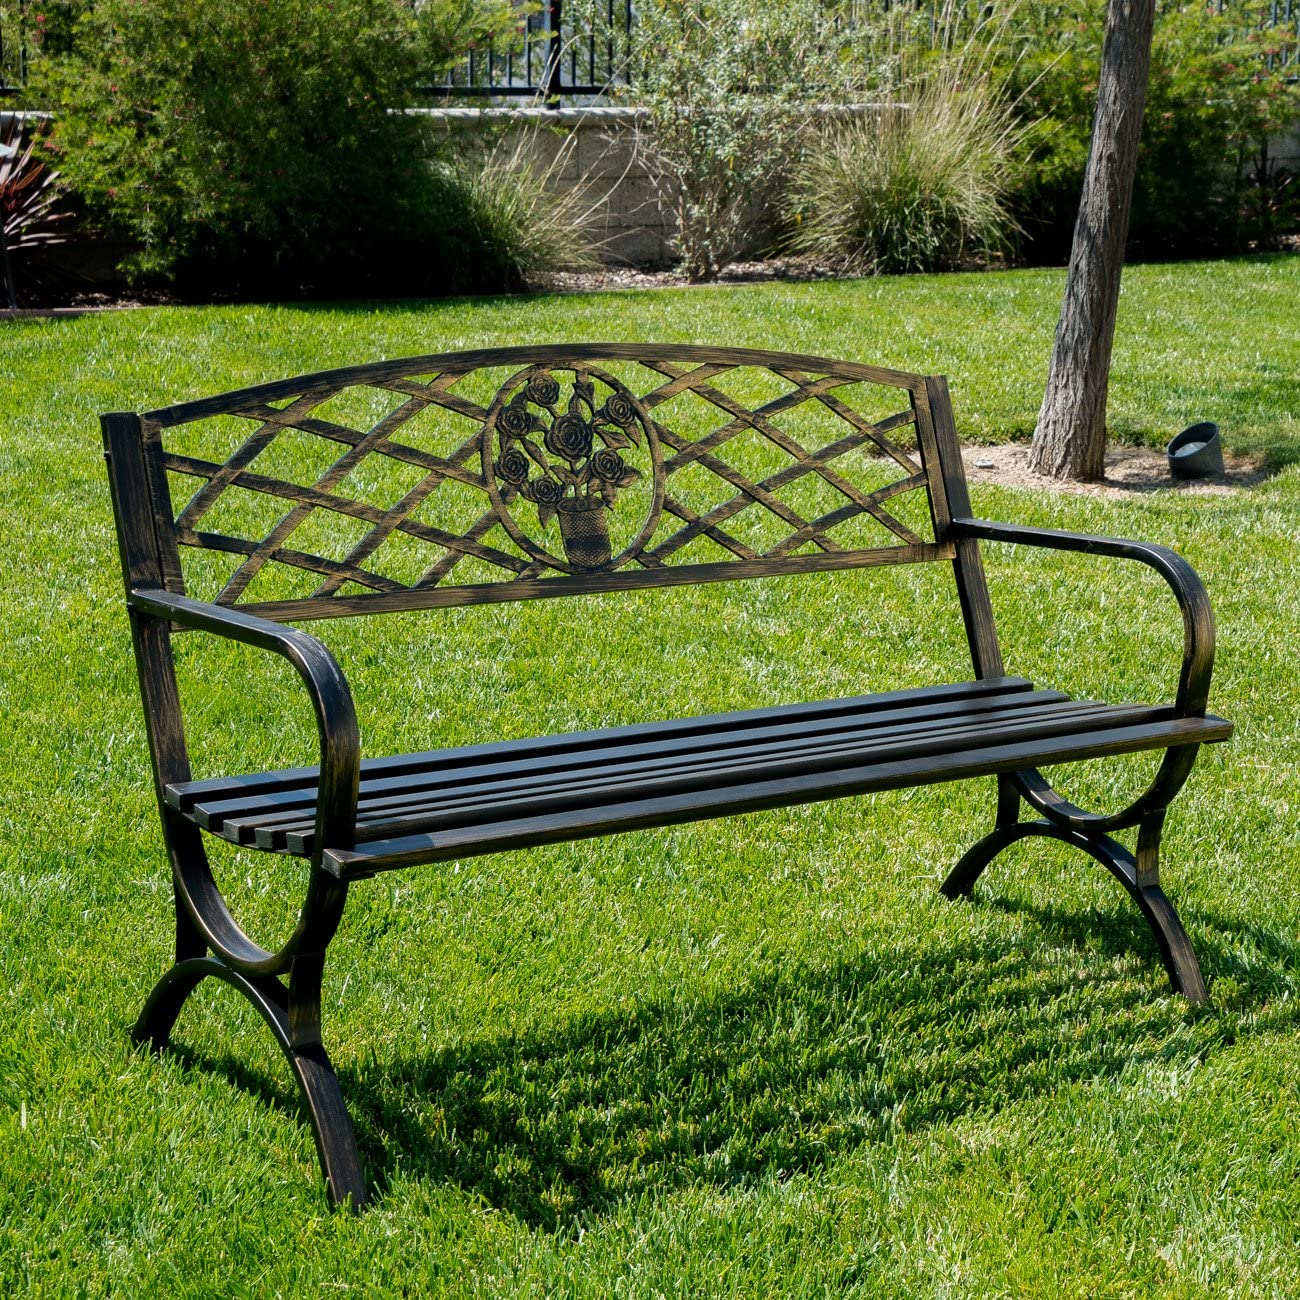 Belleze 50 Patio Garden Bench Park Yard Outdoor Furniture Porch Chair Seat Steel Frame, Bronze